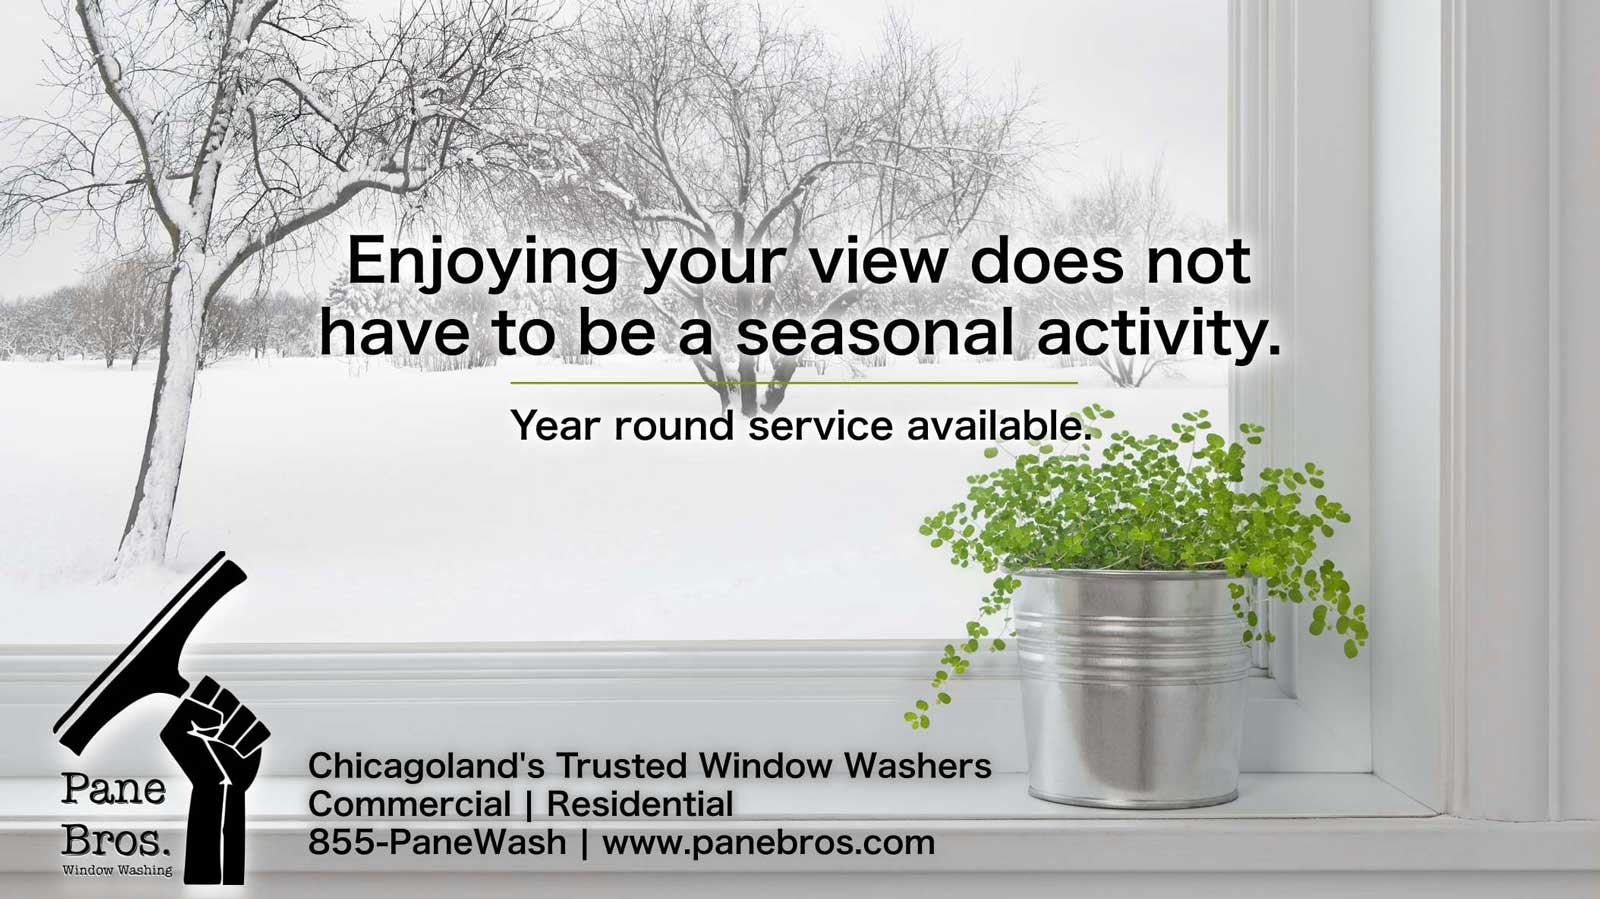 caption: enjoying your view does not have to be a seasonal activity